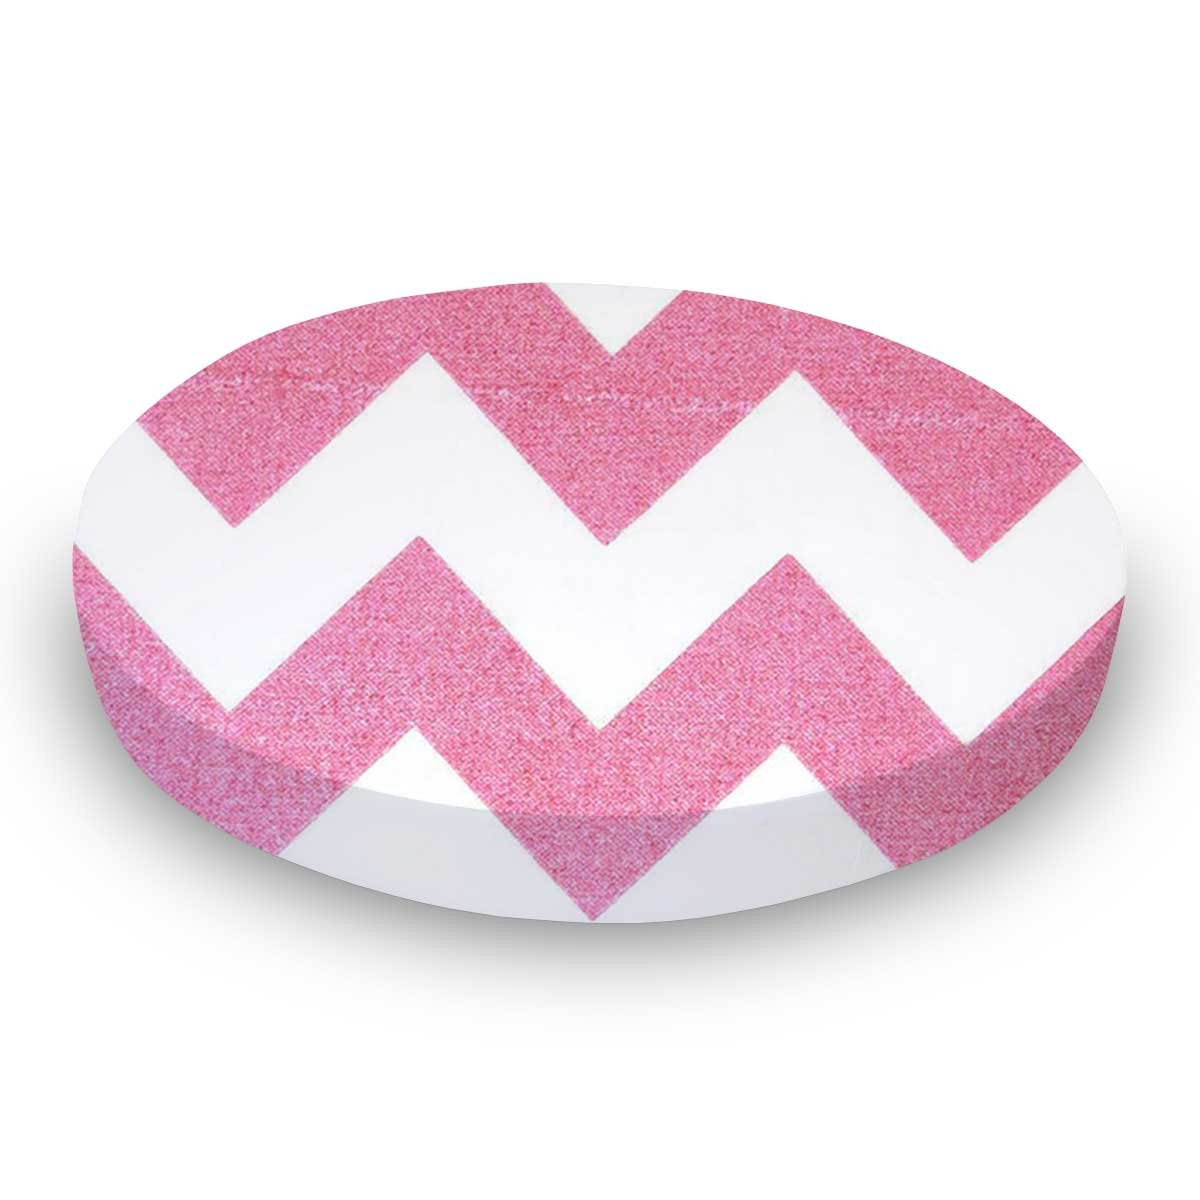 SheetWorld Fitted 100% Cotton Percale Oval Crib Sheet, Fits Stokke Sleepi 26 x 47, Sparkly Pink Chevron, Made in USA